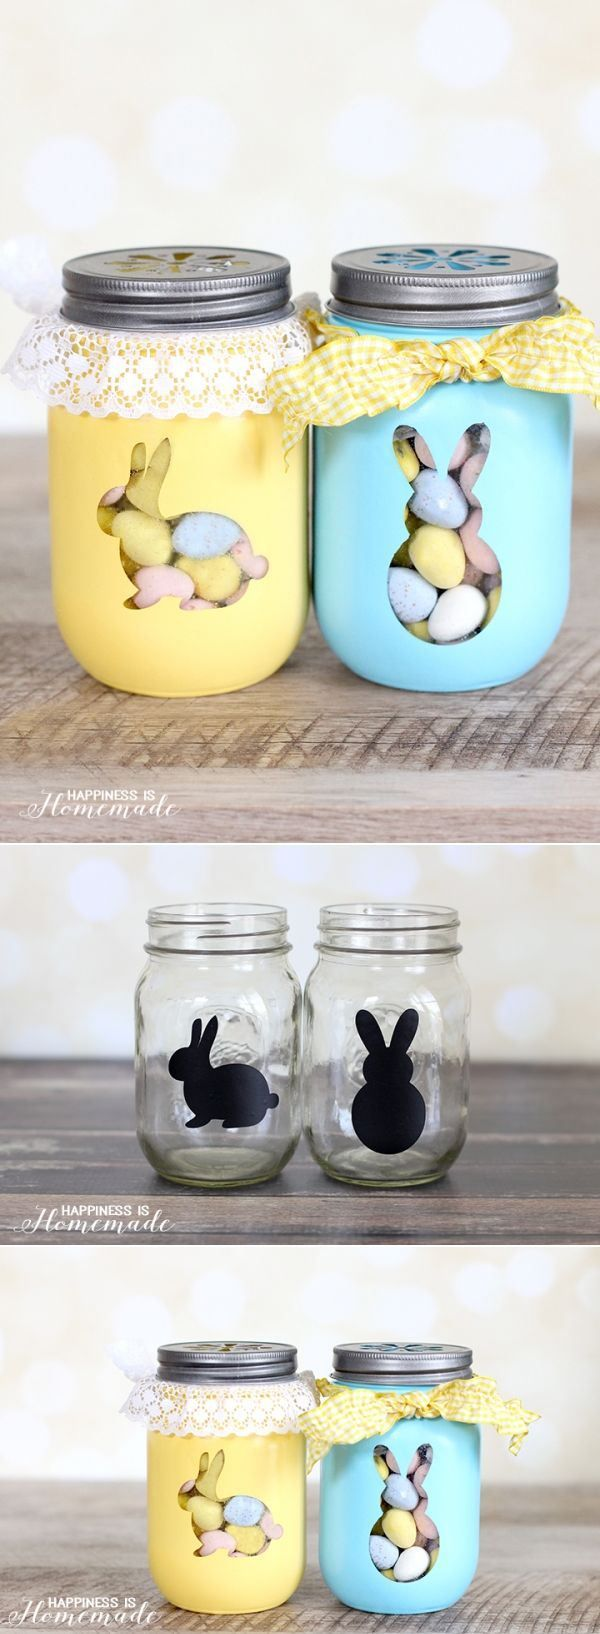 Easter bunny canvas easter bunny easter and bunny diy ester bunny treat jars more negle Images